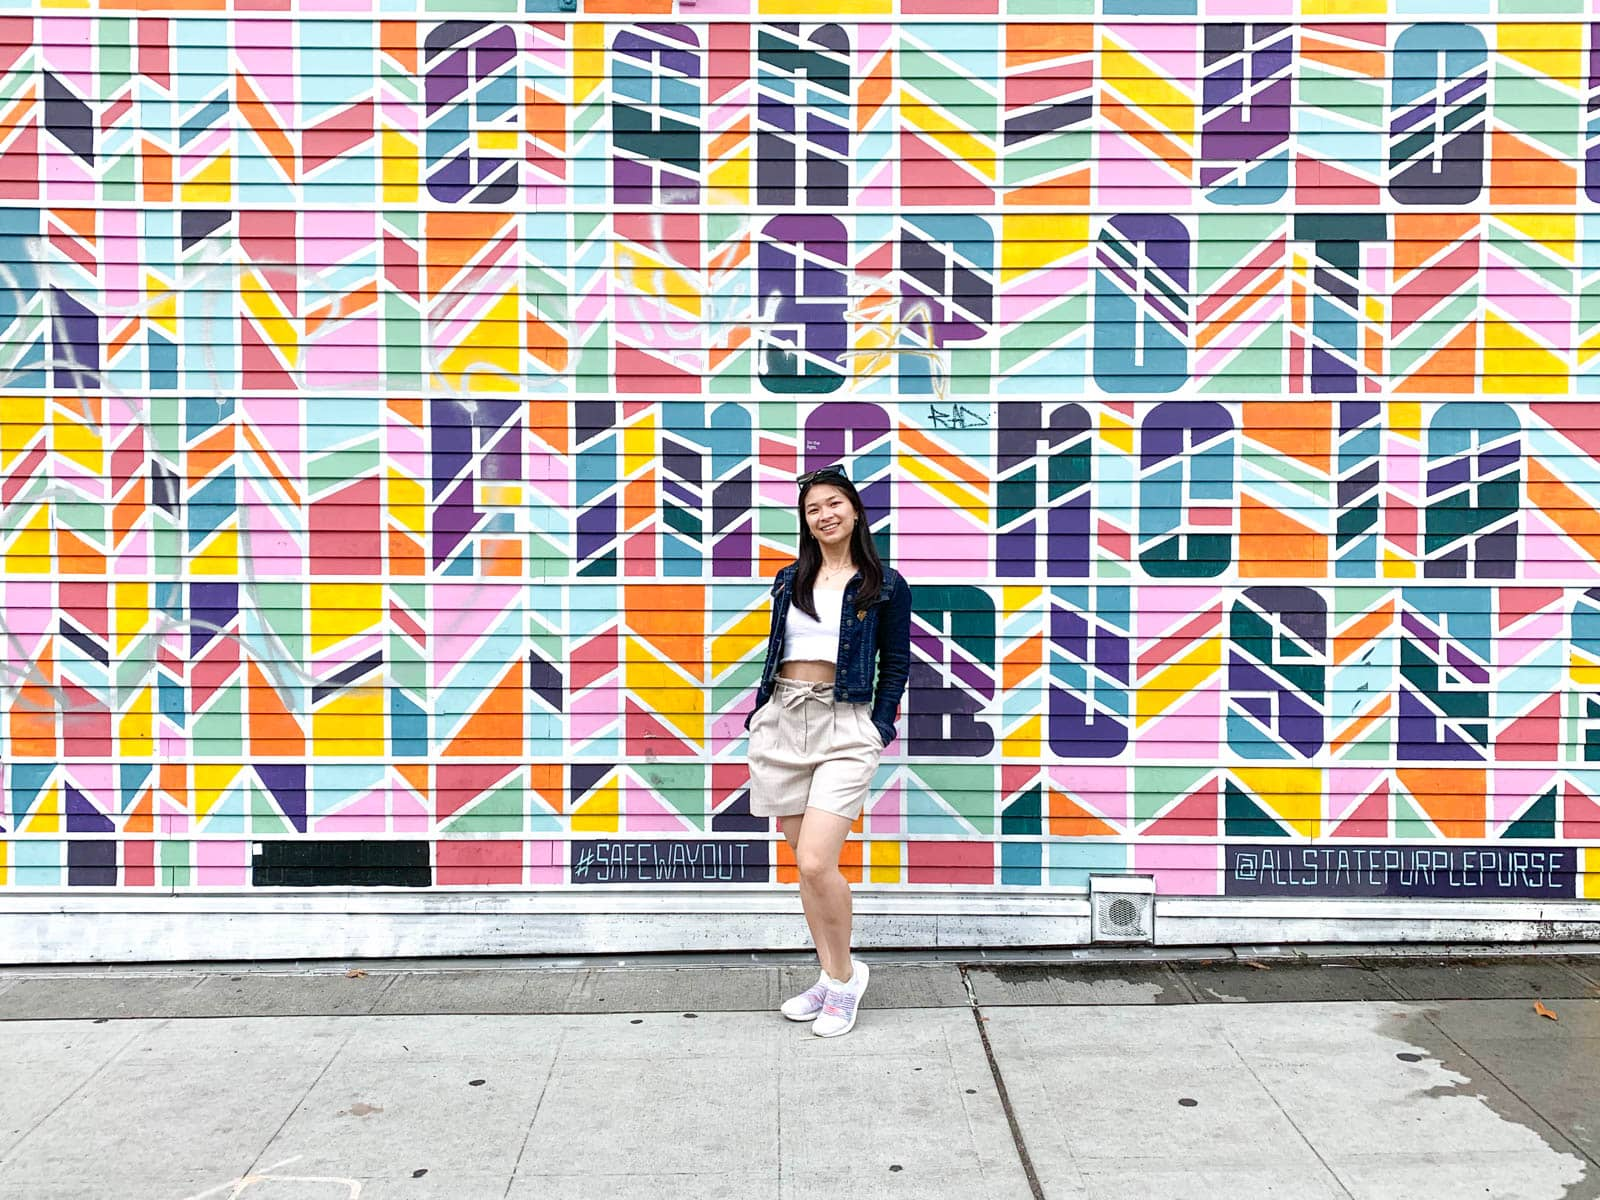 A woman with short dark hair, wearing a light coloured top and shorts, white shoes, and a denim jacket, standing in front of a colourful mural with her hands in her pockets.